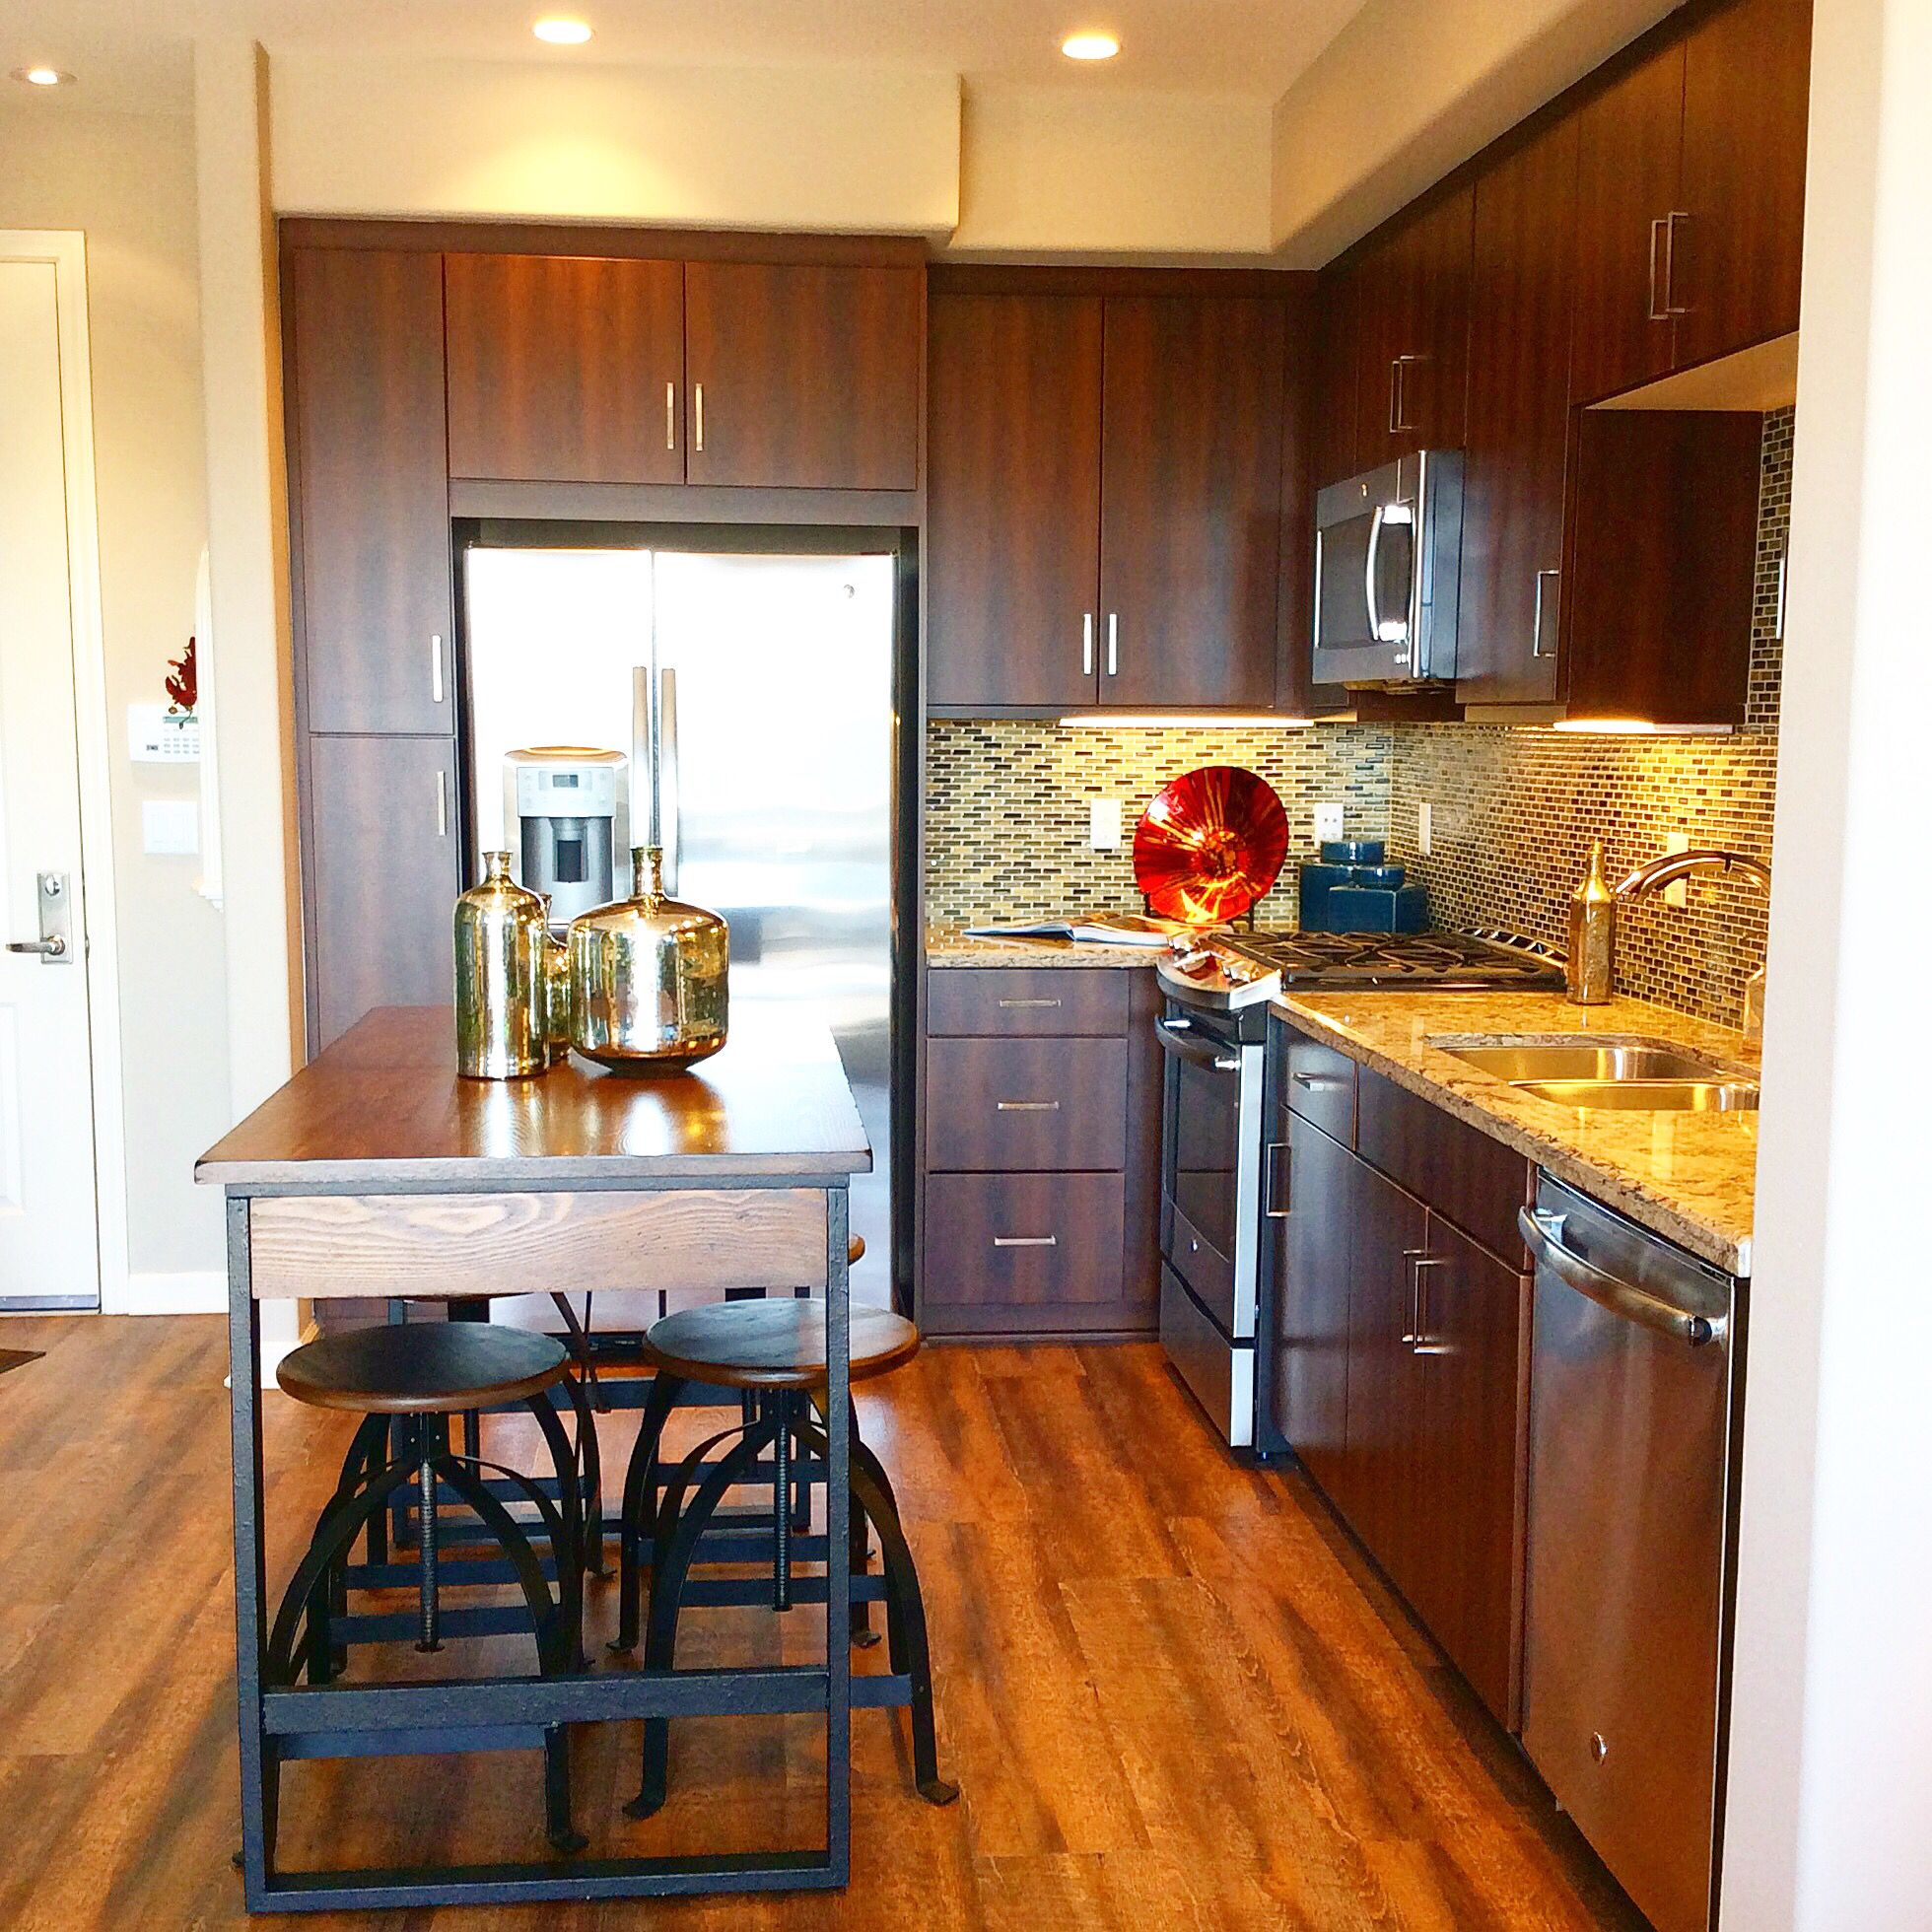 Be inspired by our beautiful modelapartments at tribeca